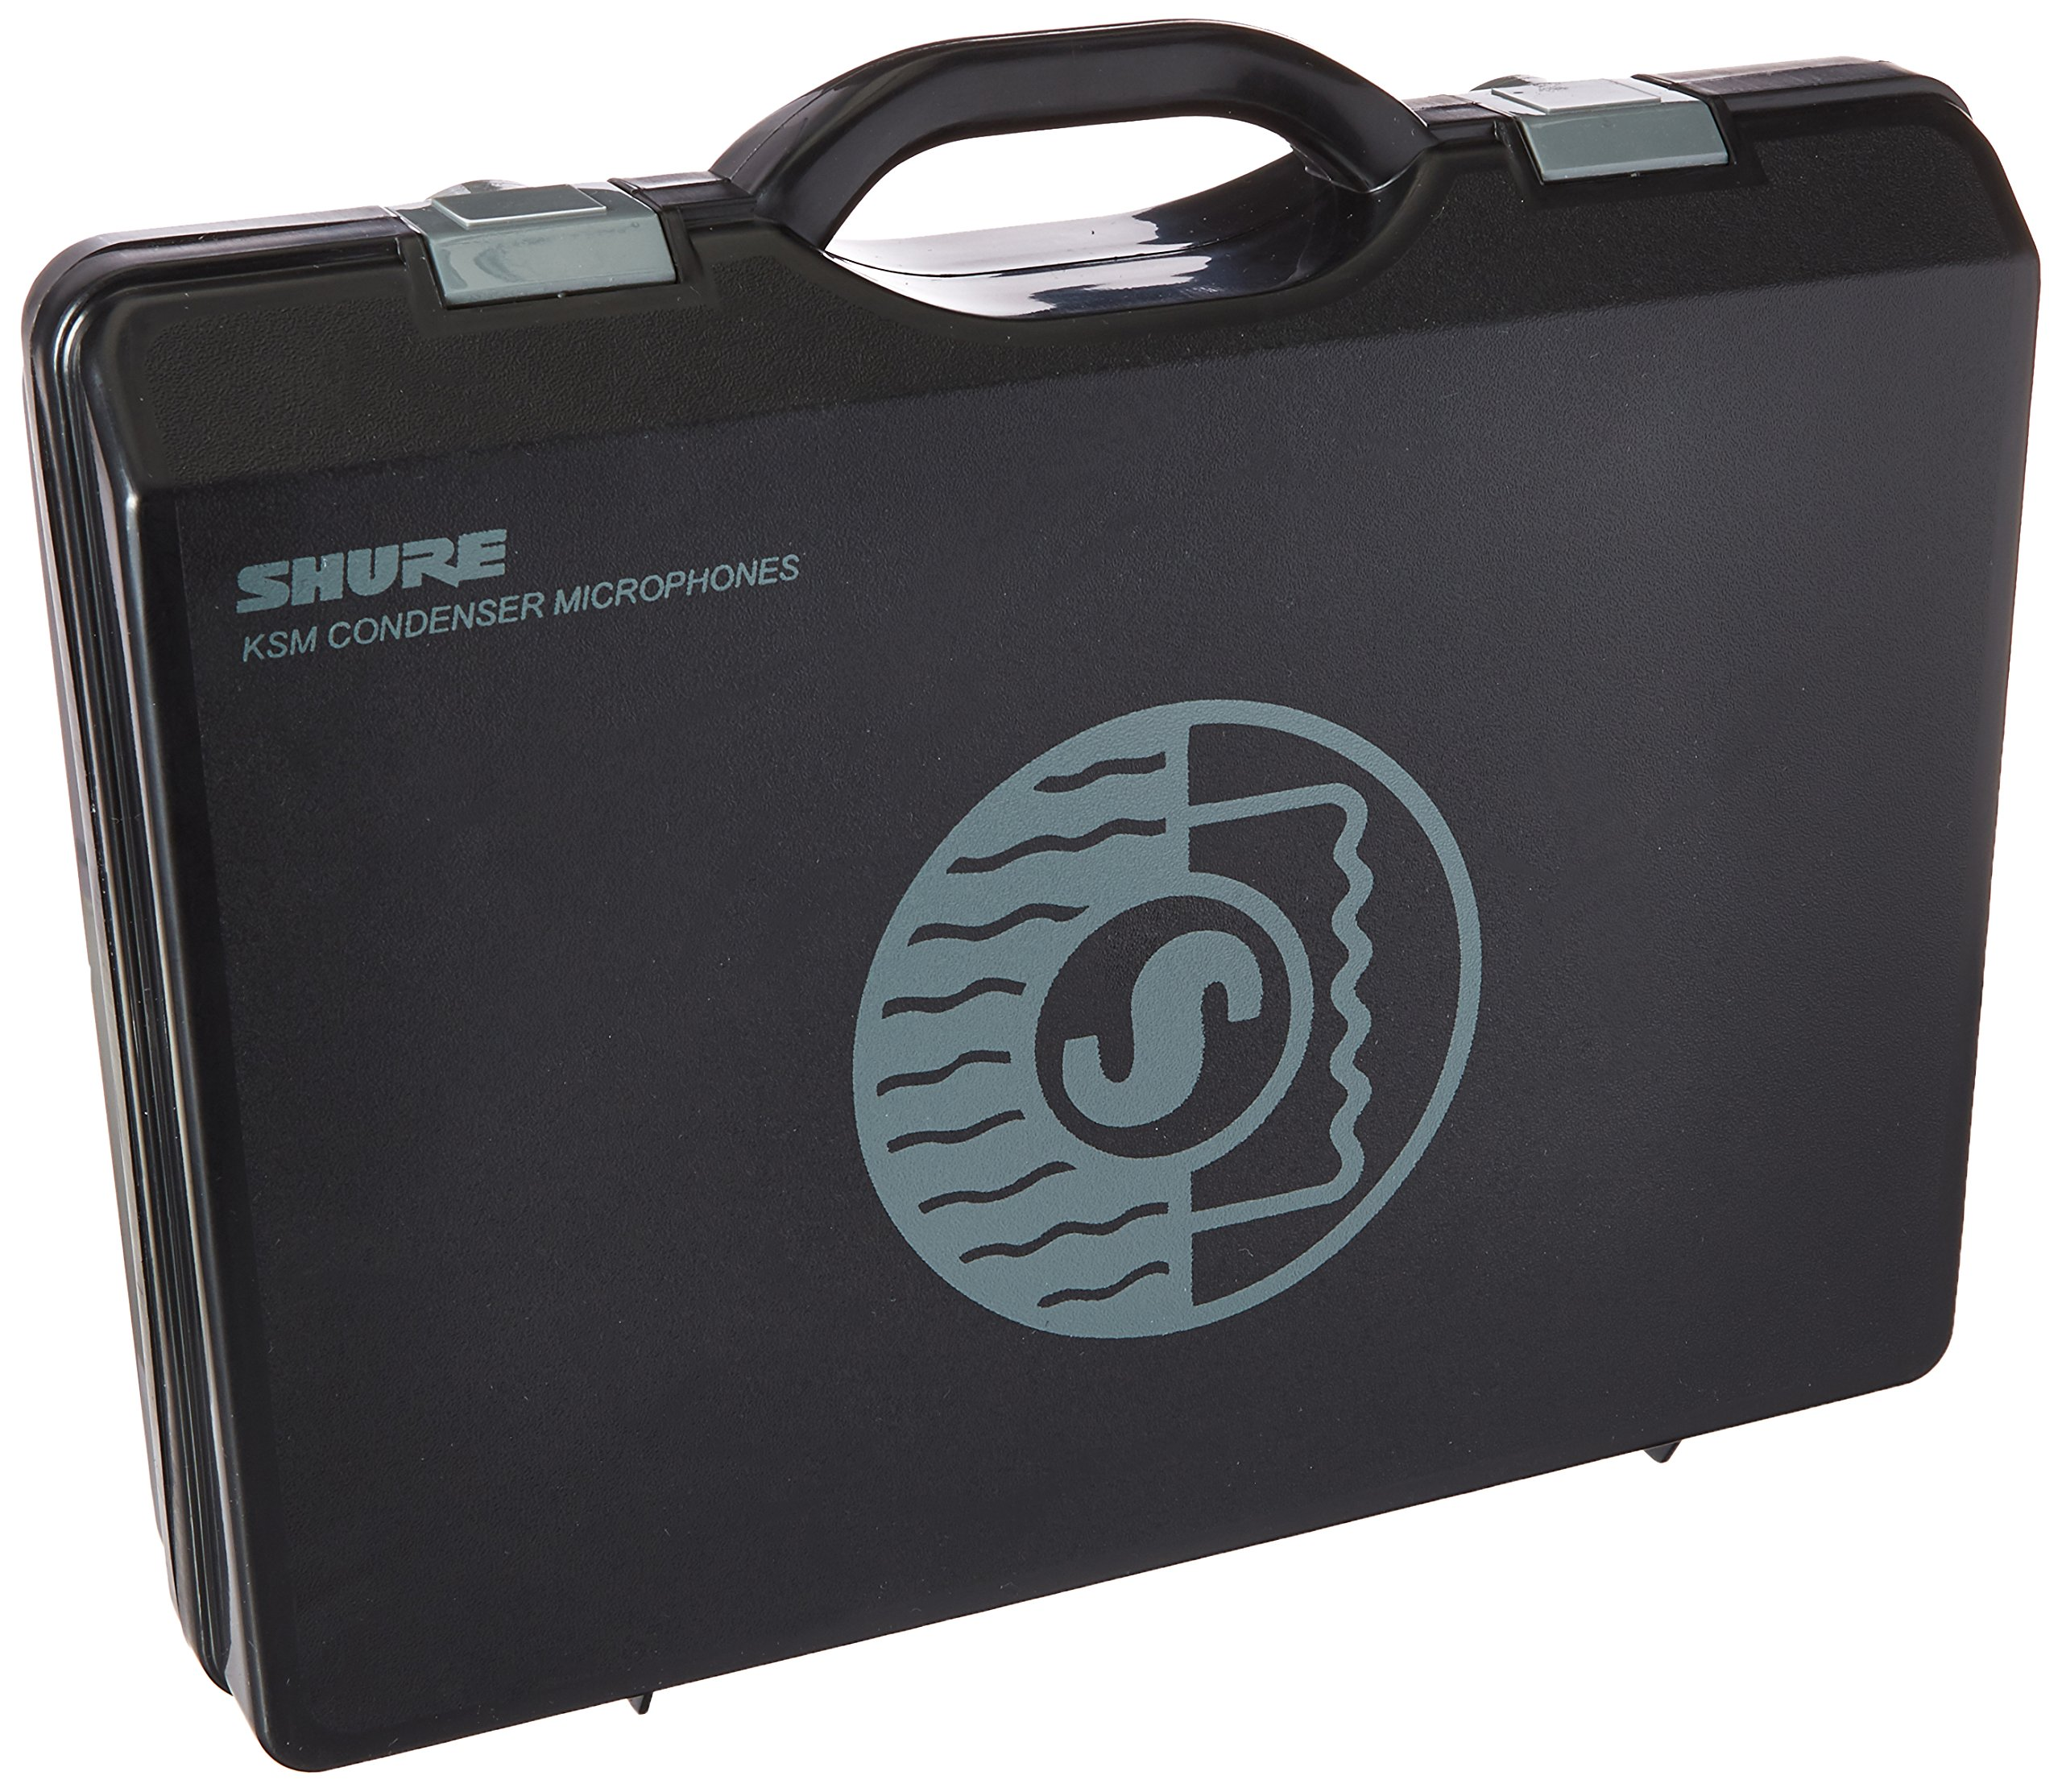 Shure A100C Carrying Case for Two KSM 137 or KSM141 Microphones and A27M Stereo Bar